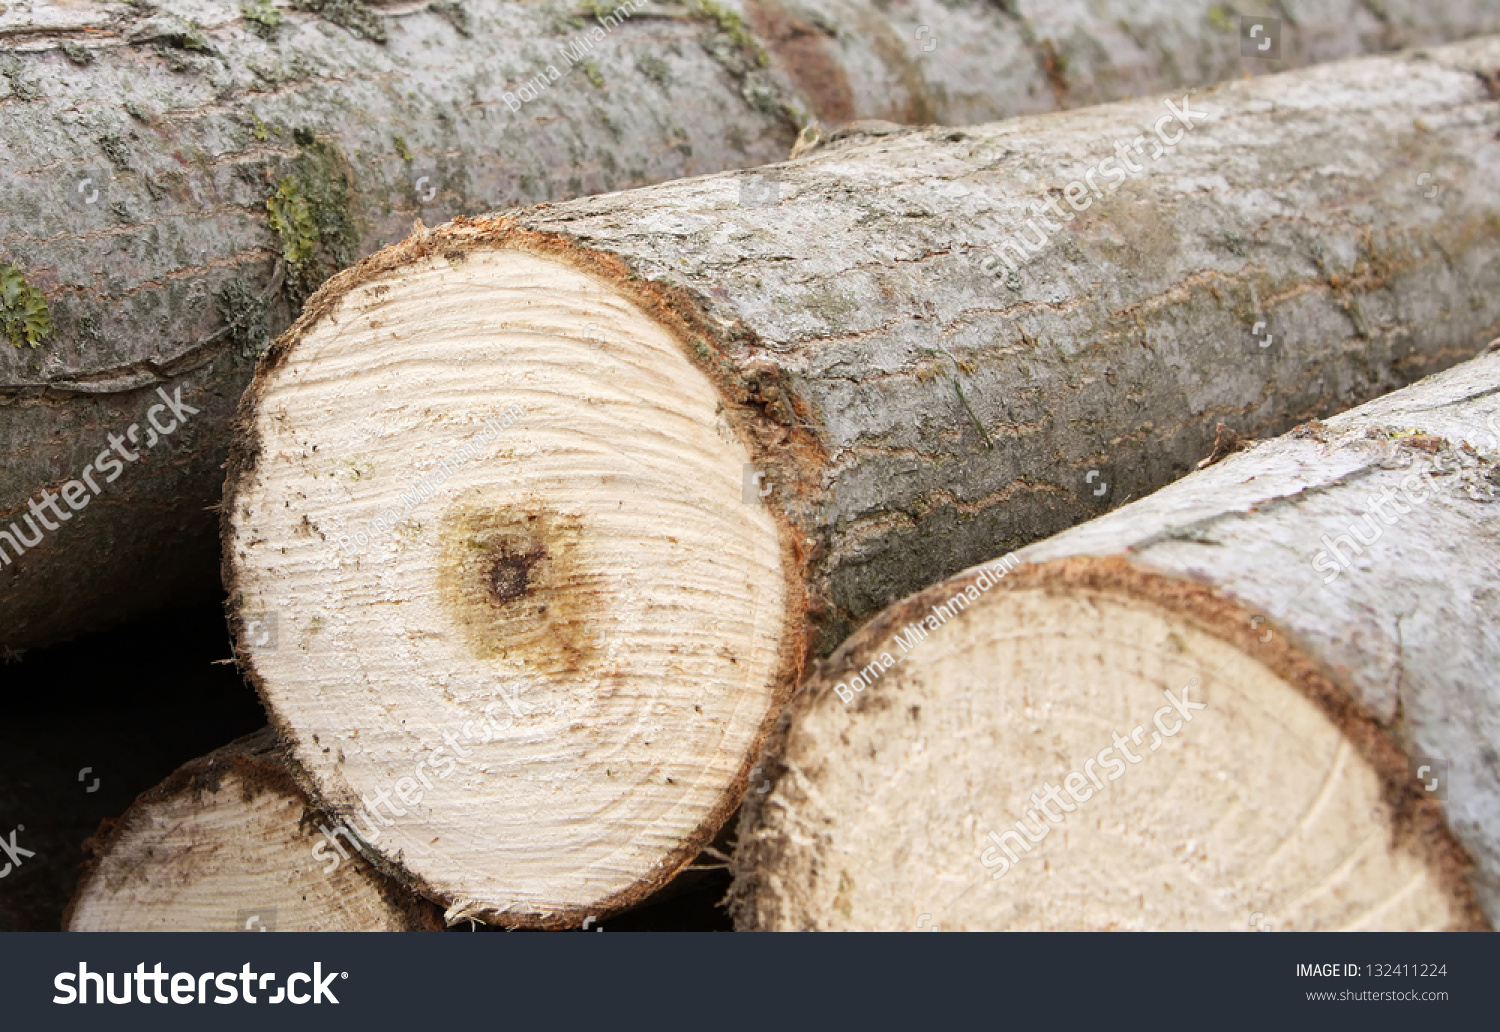 Pile lumber cut forest stock photo shutterstock